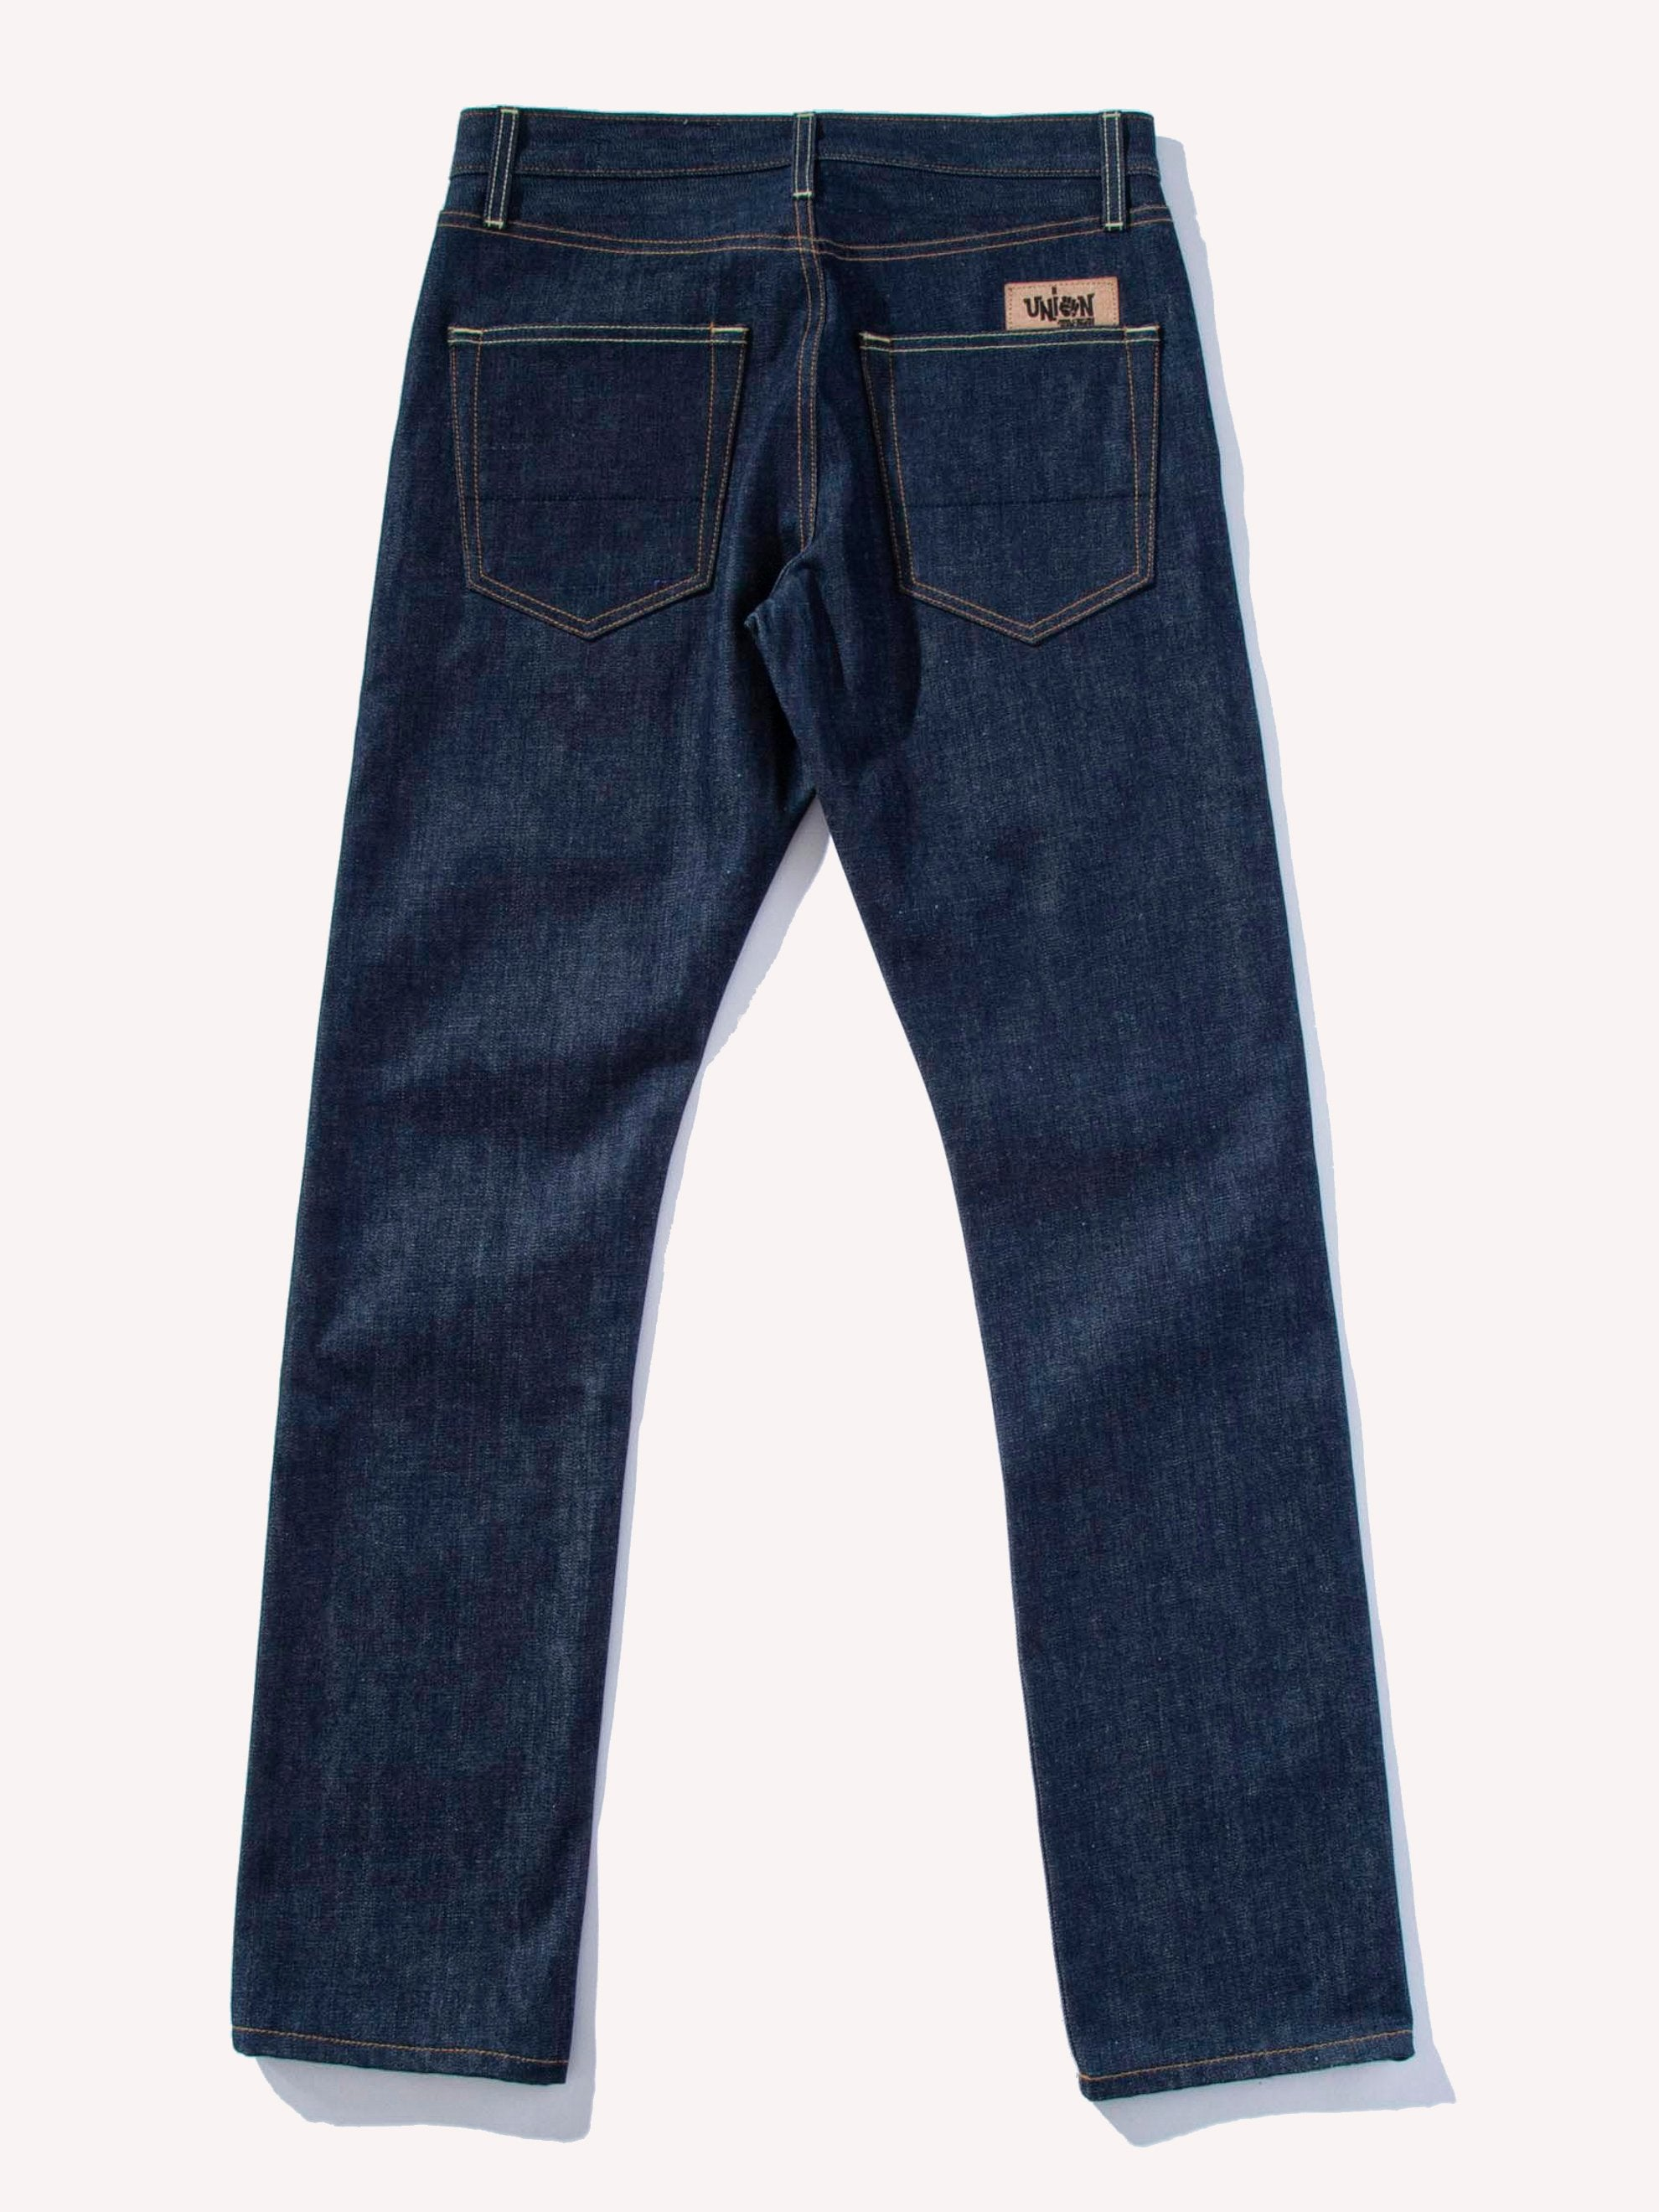 Indigo Mr. Wilson Union Jean 9